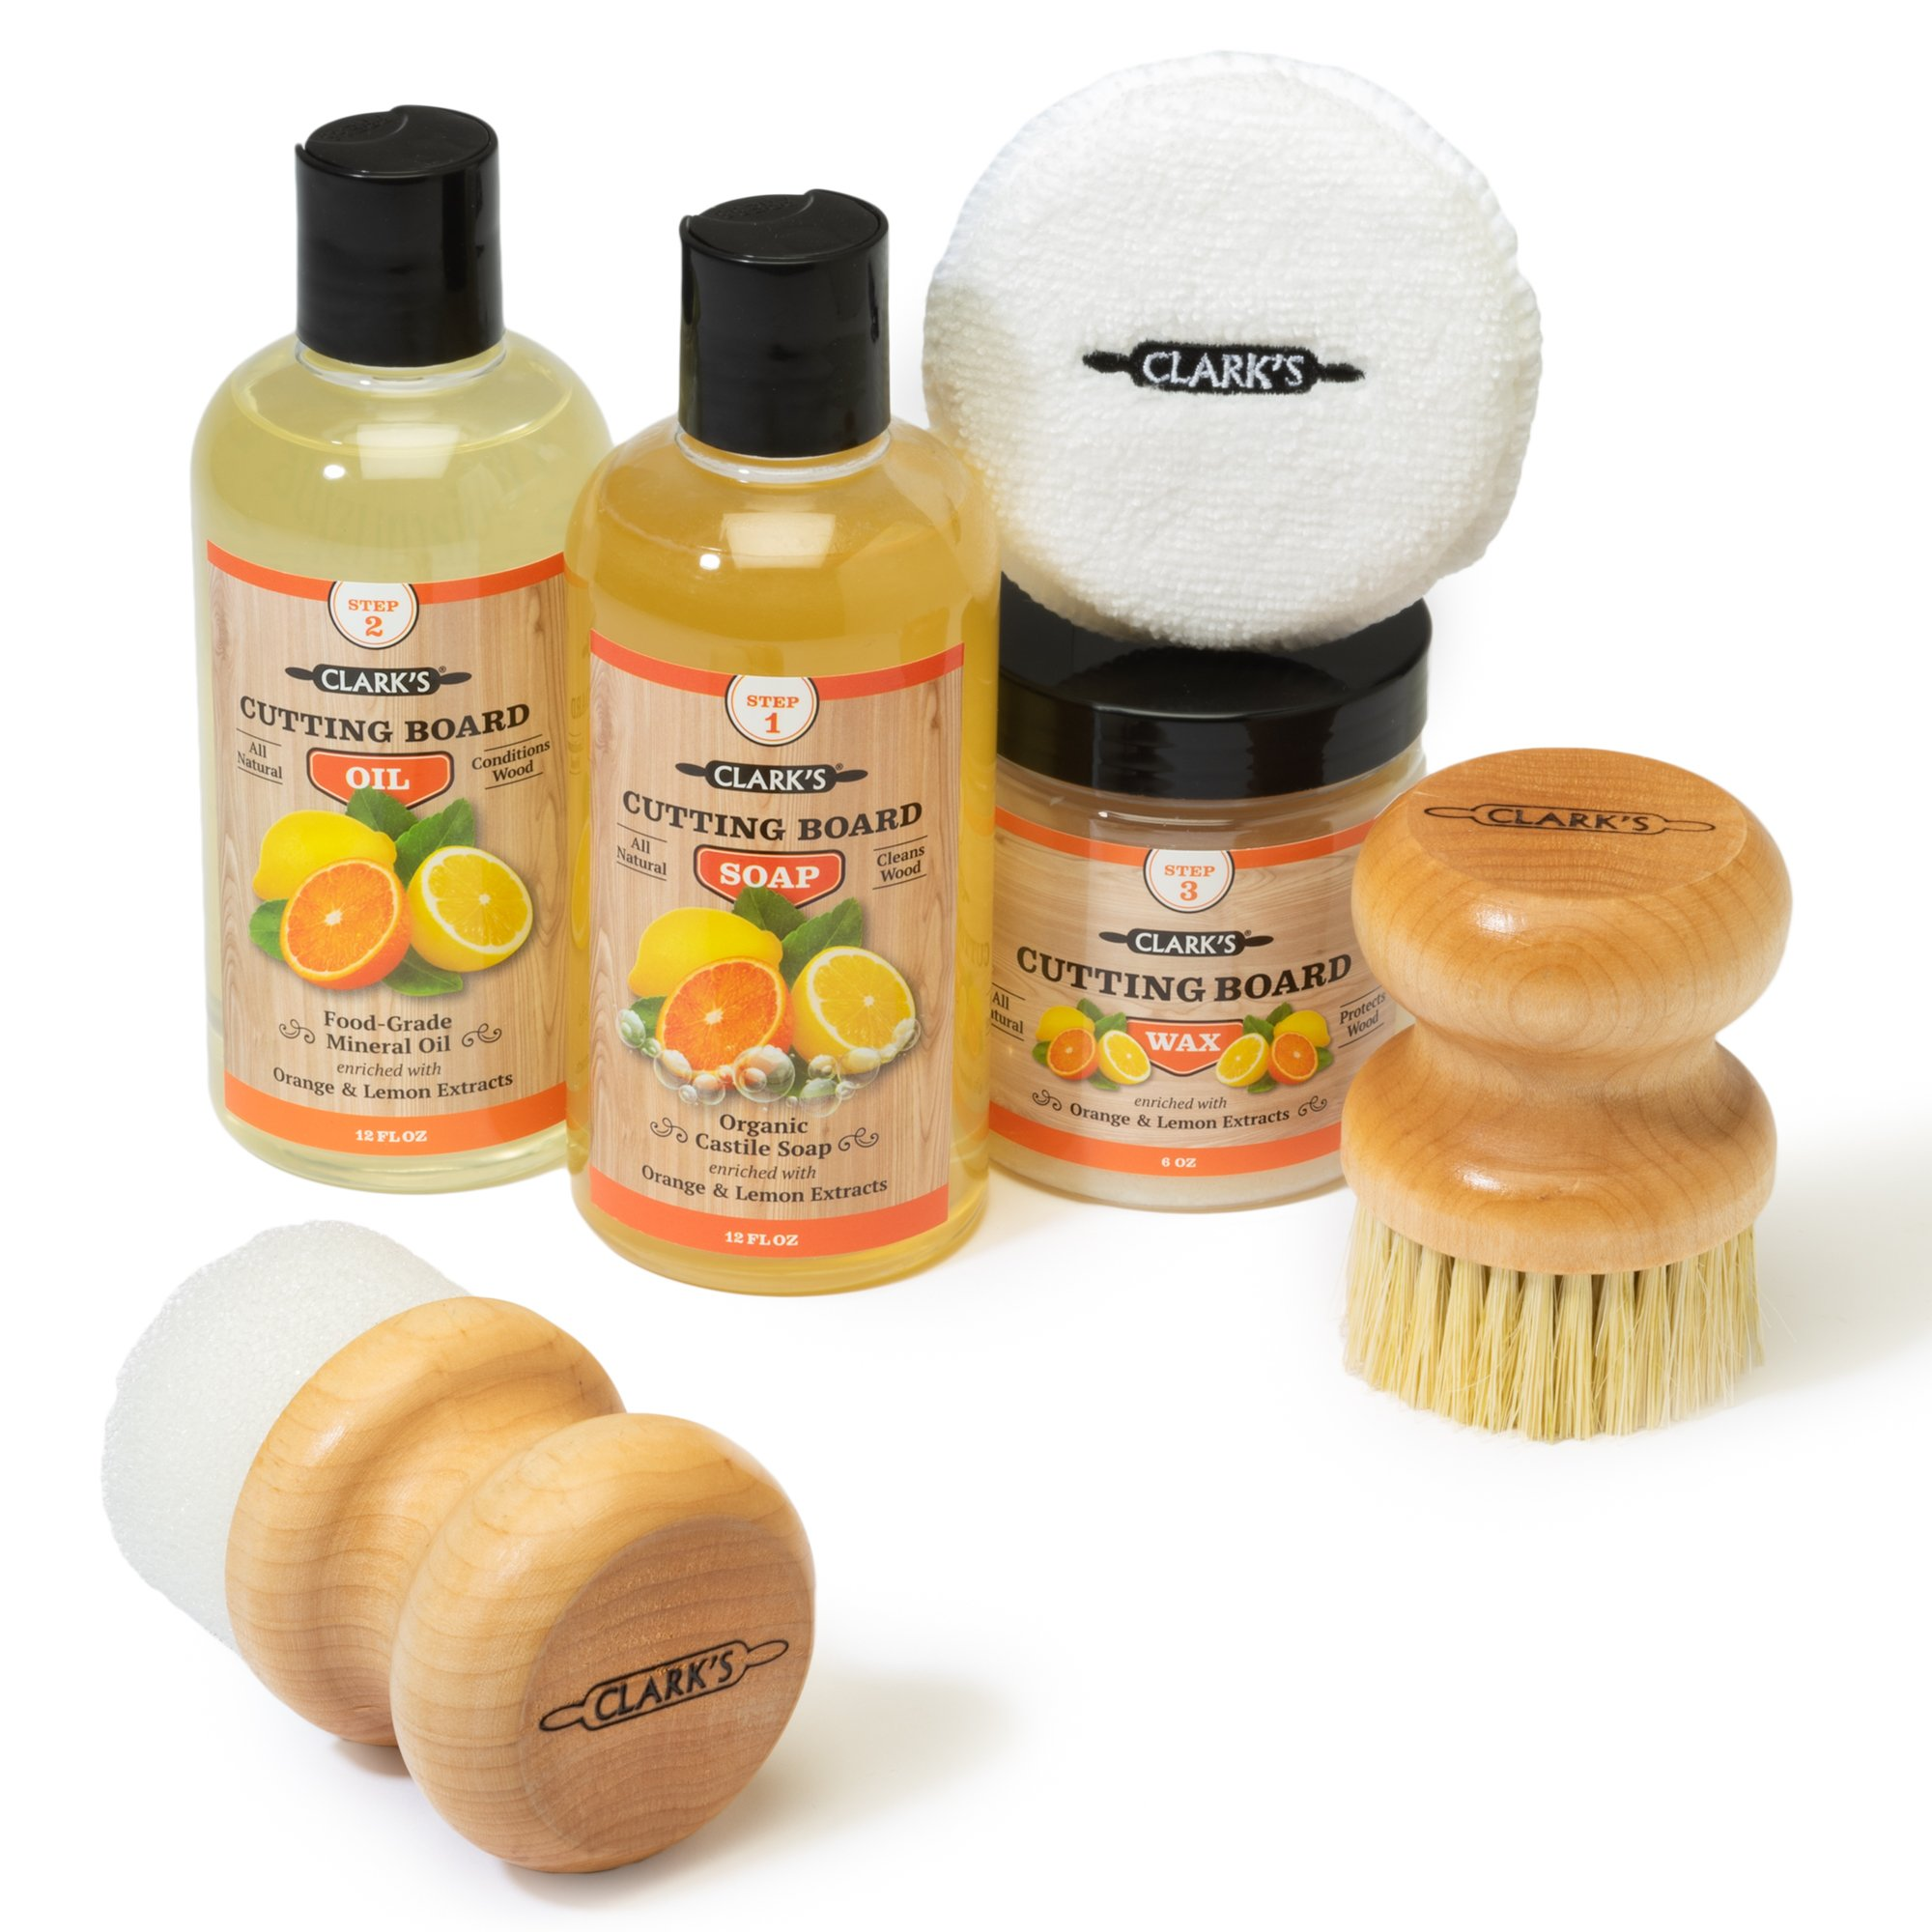 CLARK'S Complete Cutting Board Care Kit | Cutting Board Oil (12oz) - Soap (12oz) - Finish Wax (6oz) - Applicator - Scrub Brush - Finishing Pad | Orange & Lemon Scented by CLARKS